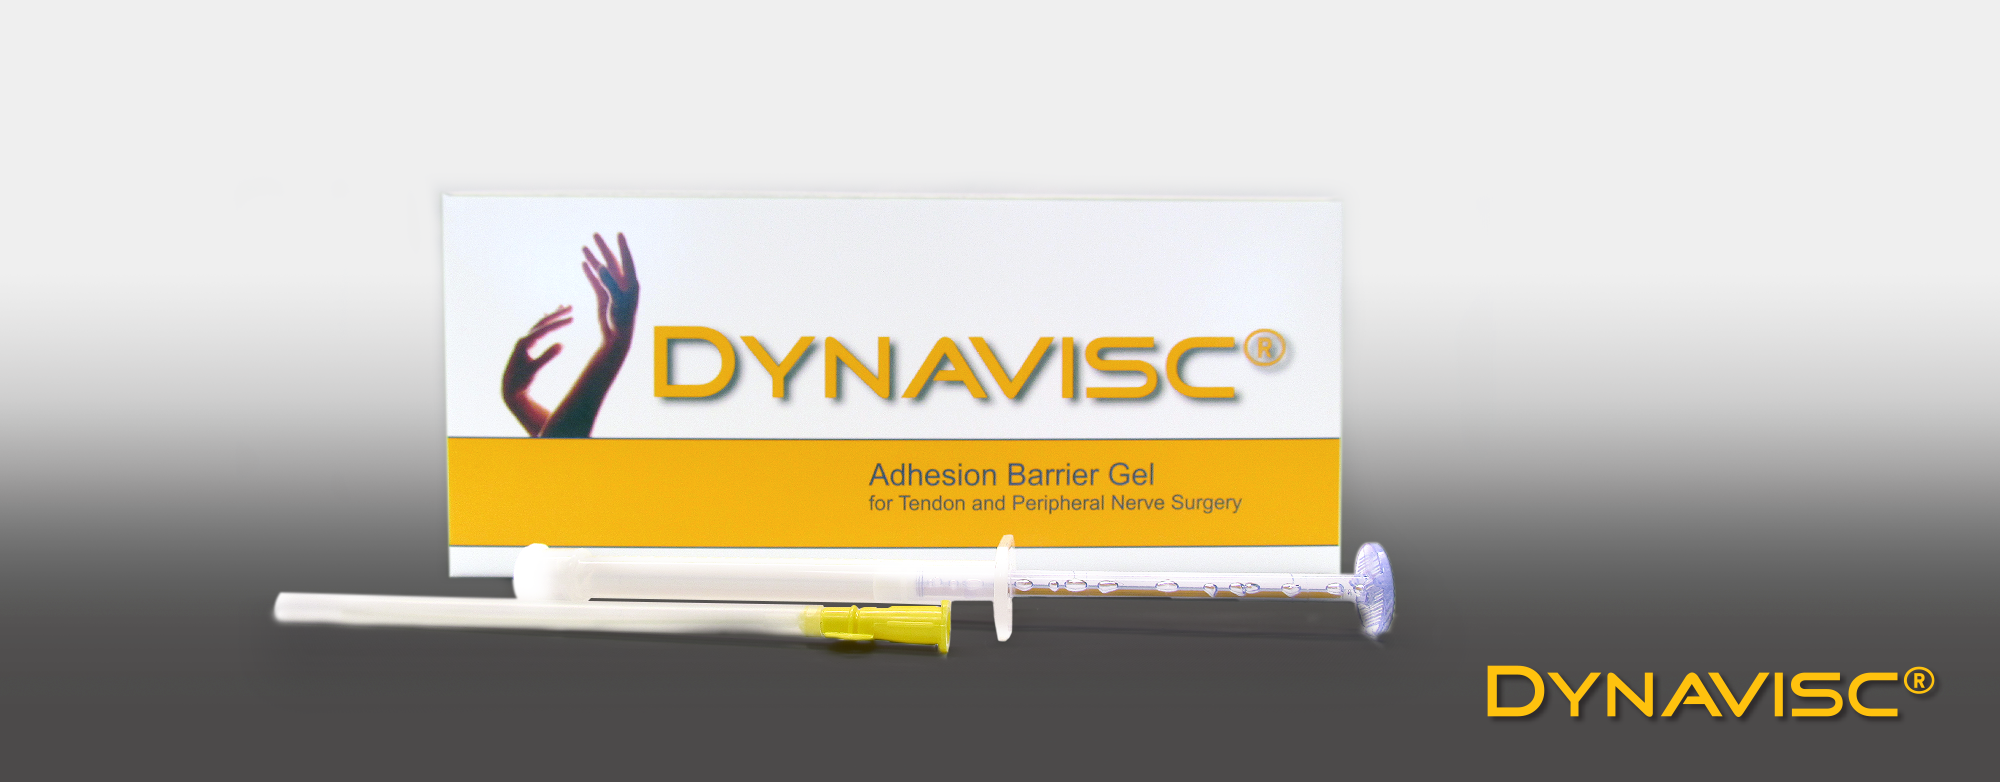 DYNAVISC® - Adhesion Barrier Gel